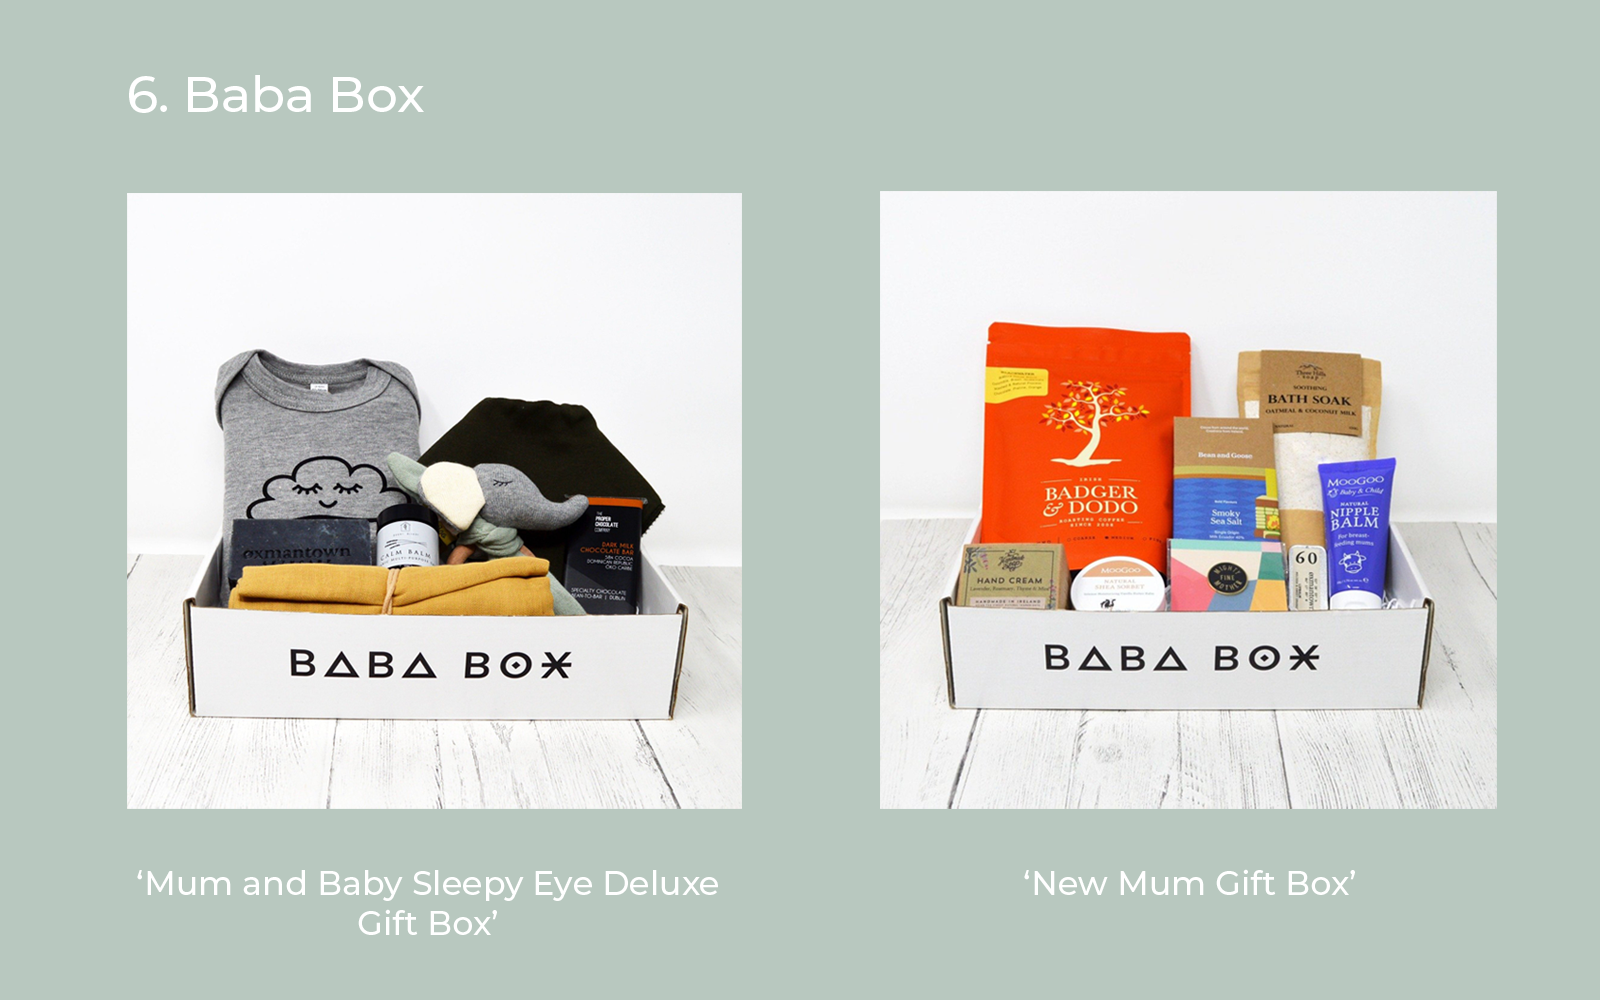 Baba Box Gifts for New Mums Lulu and belle